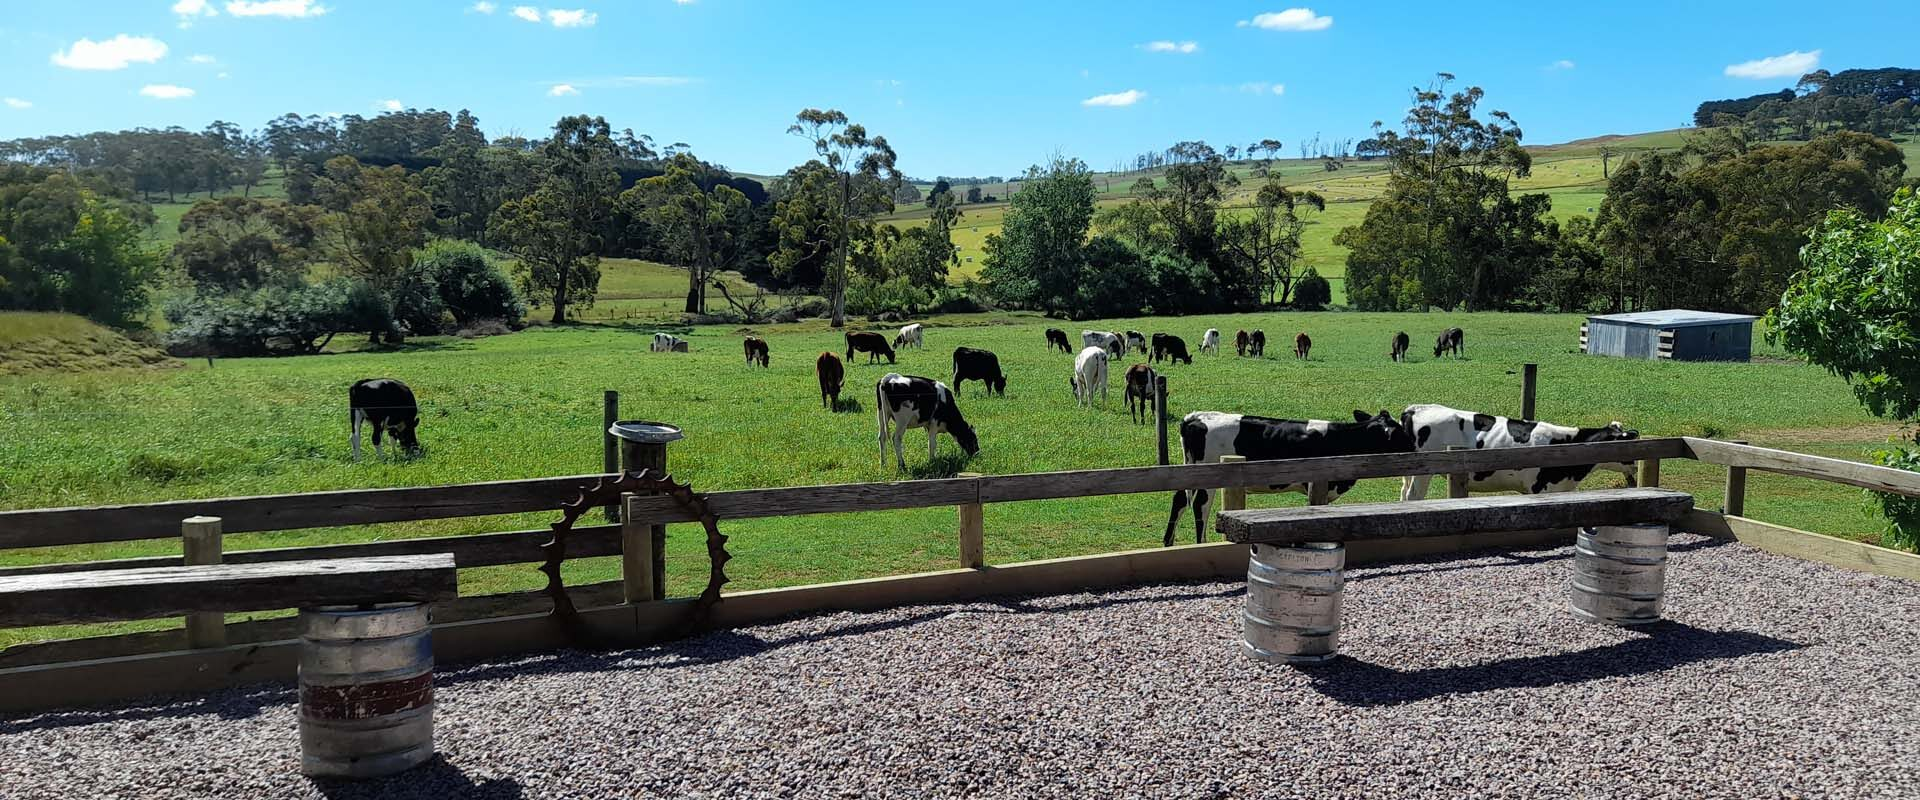 Dairylicious Farm Fudge - View from the Gate